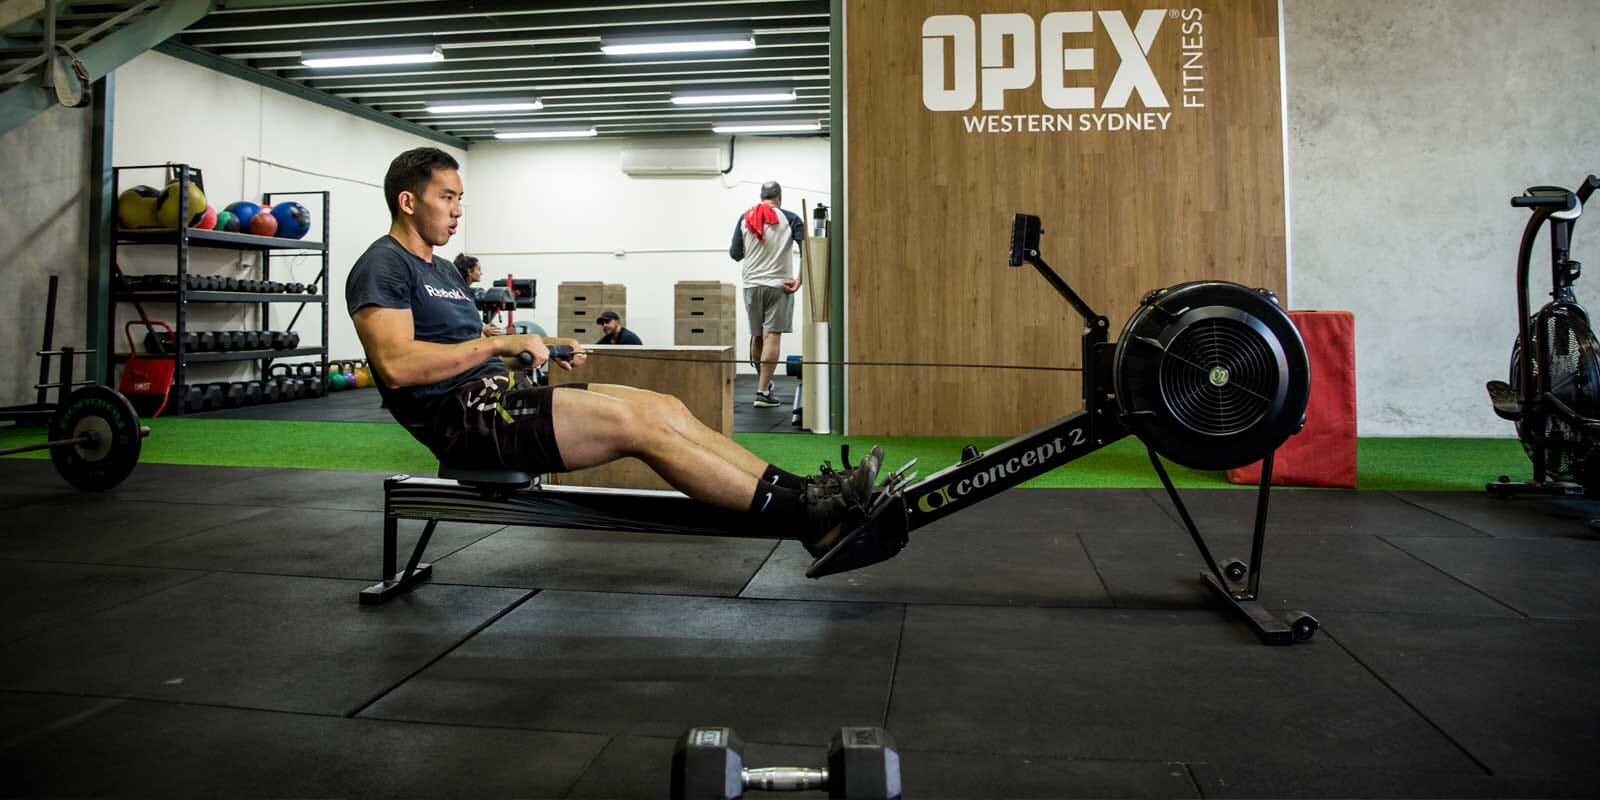 OPEX Gyms What is OPEX?